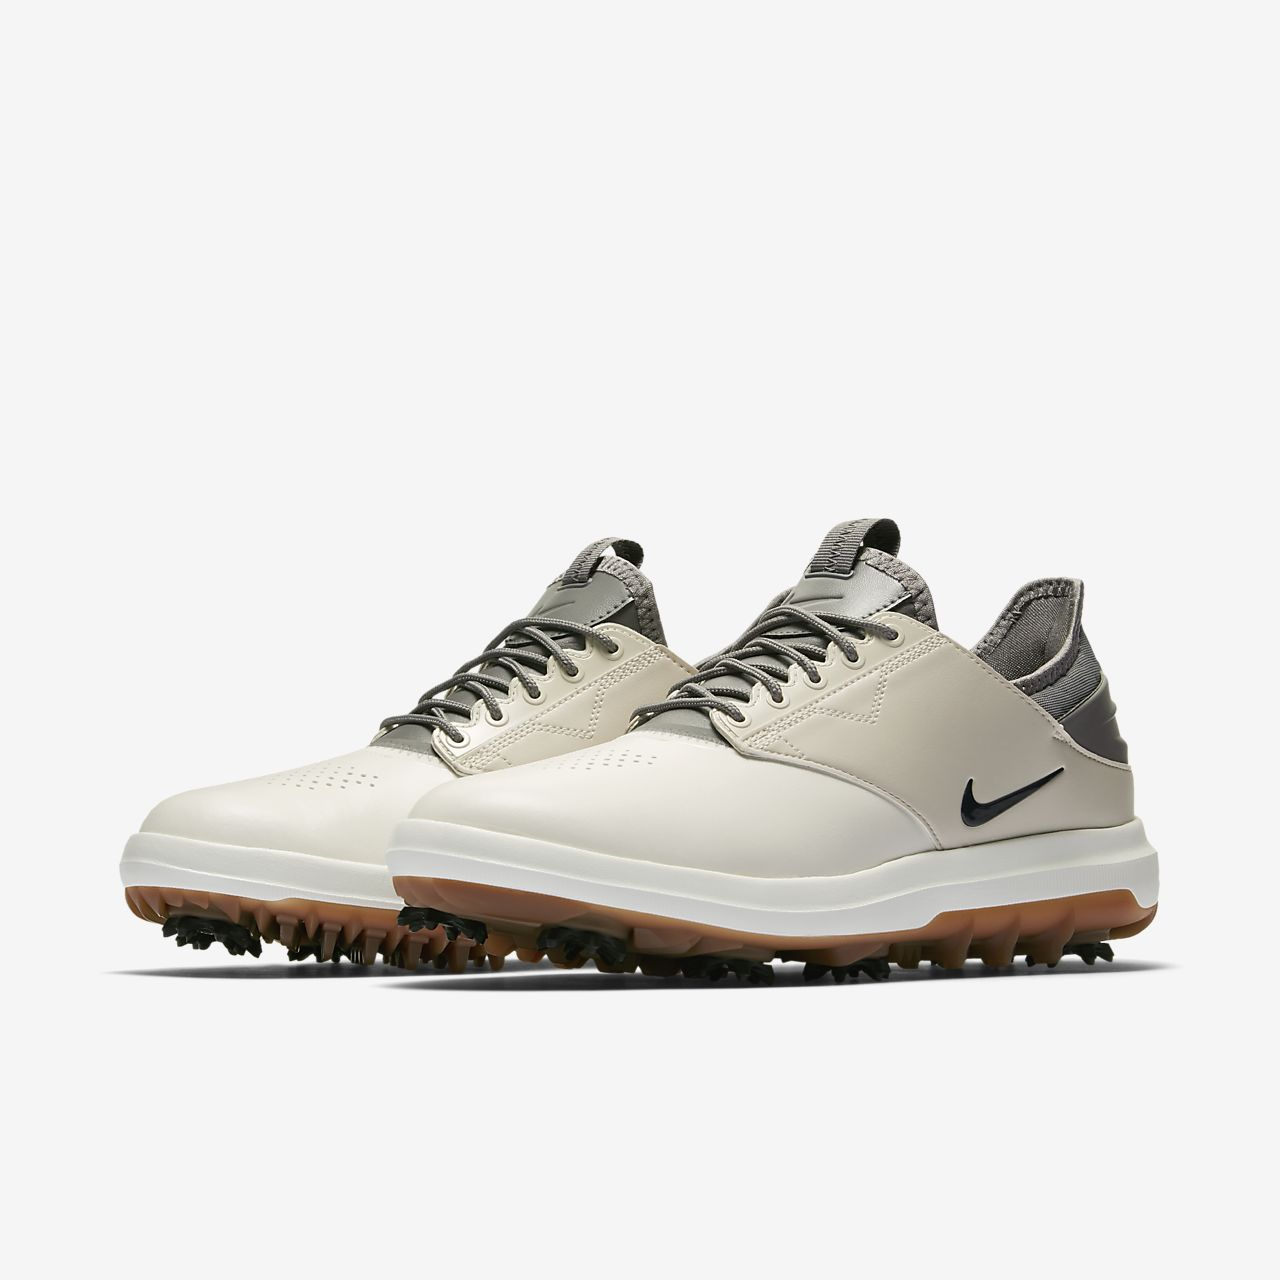 97977afa72bc Nike Air Zoom Direct Men s Golf Shoe. Nike.com GB